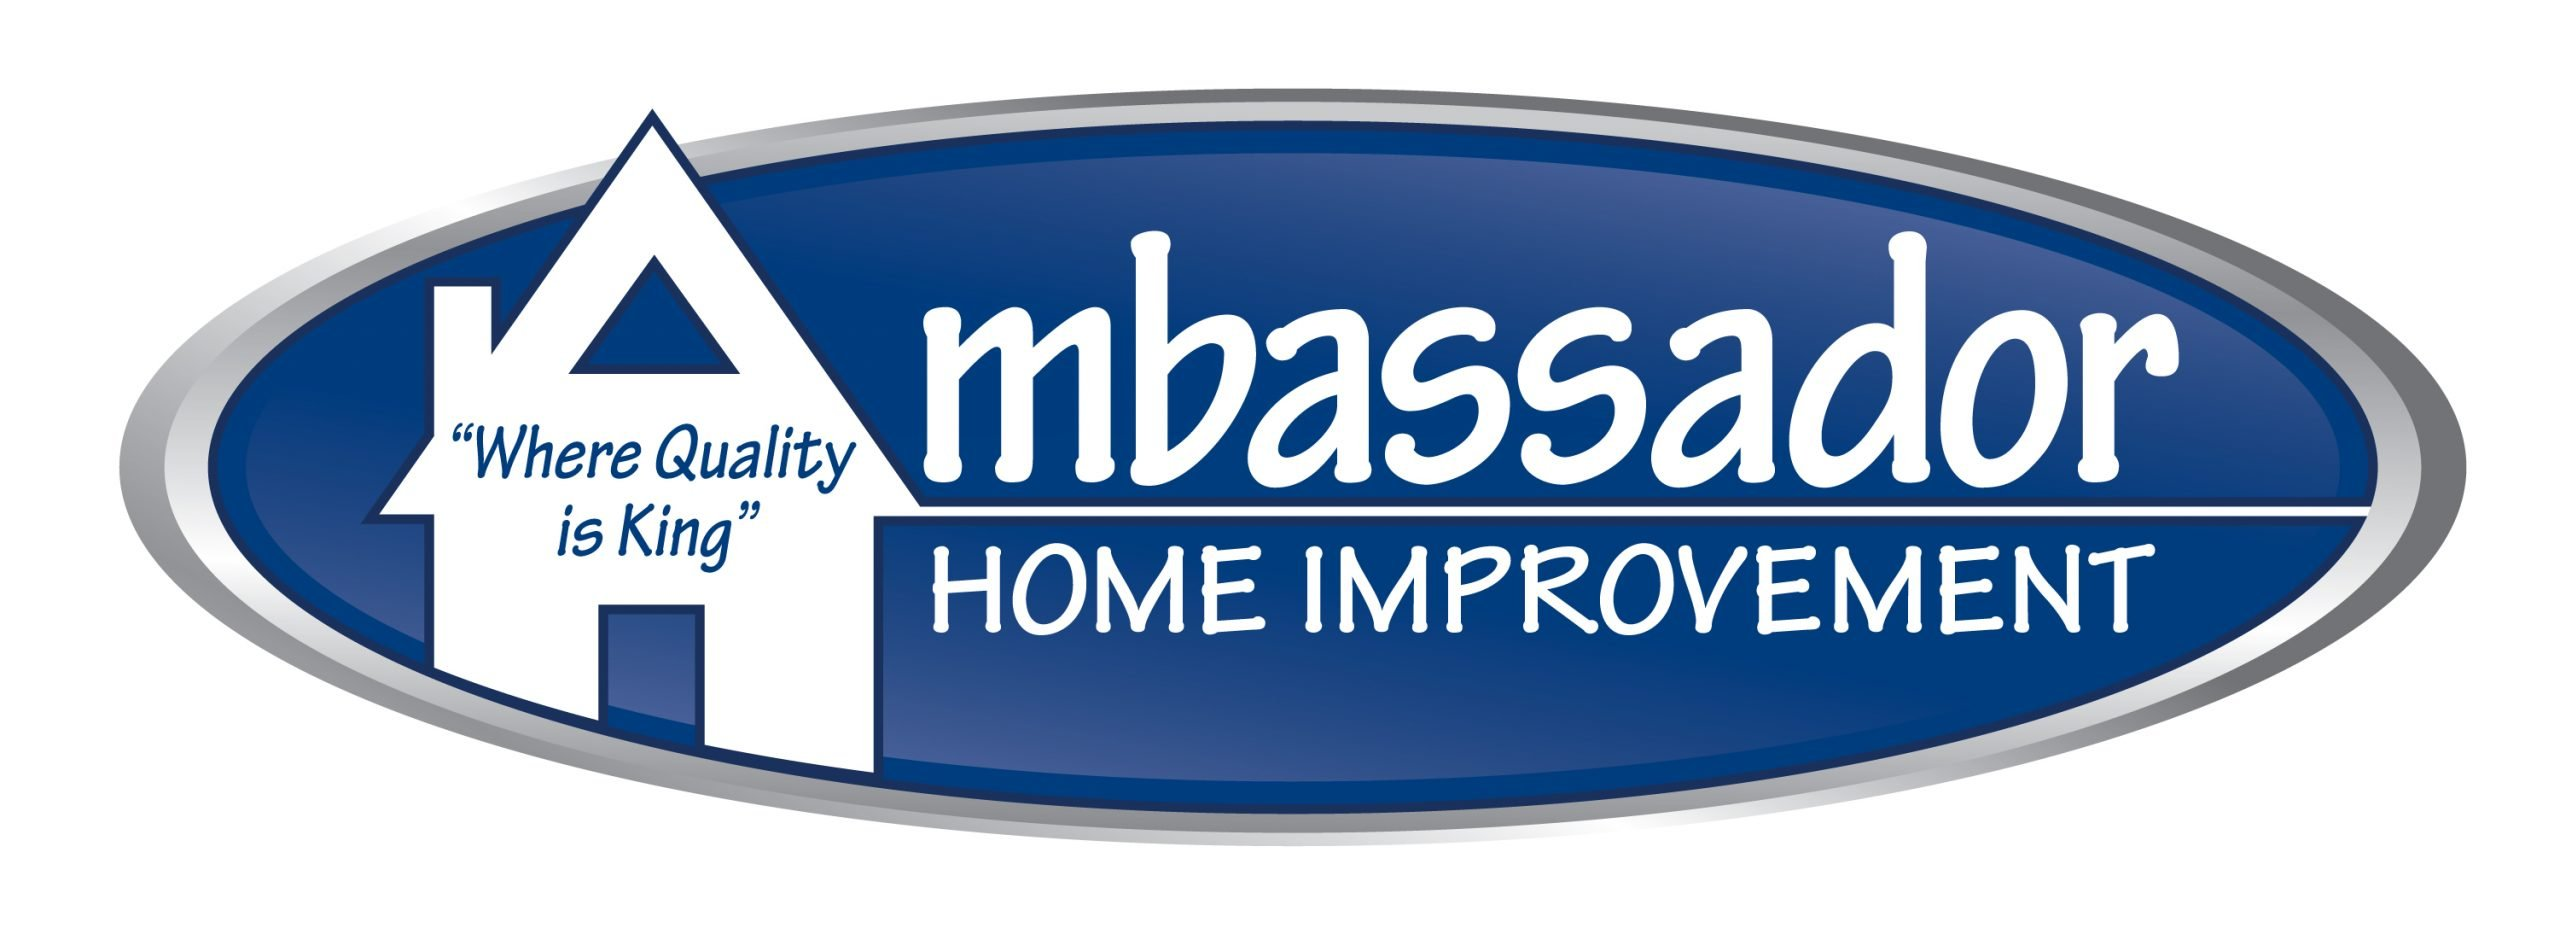 Ambassador Home Improvement Plainview Old Bethpage Chamber Of Commerce